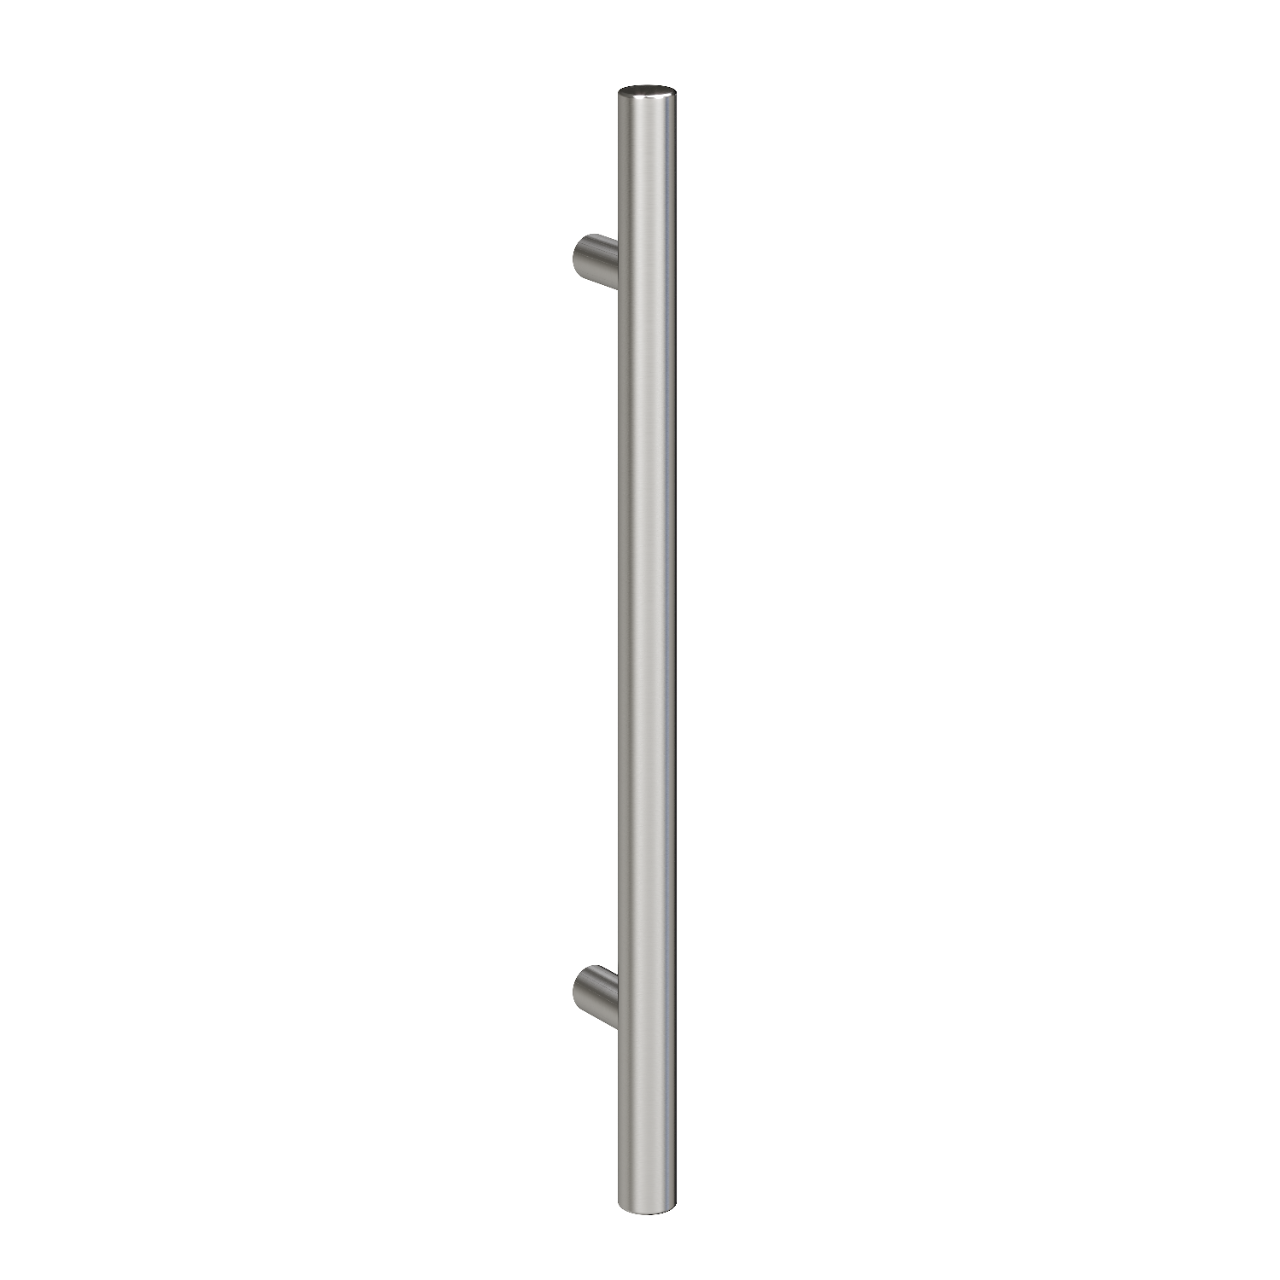 Schlage Tubular Stainless Steel Entrance Handle